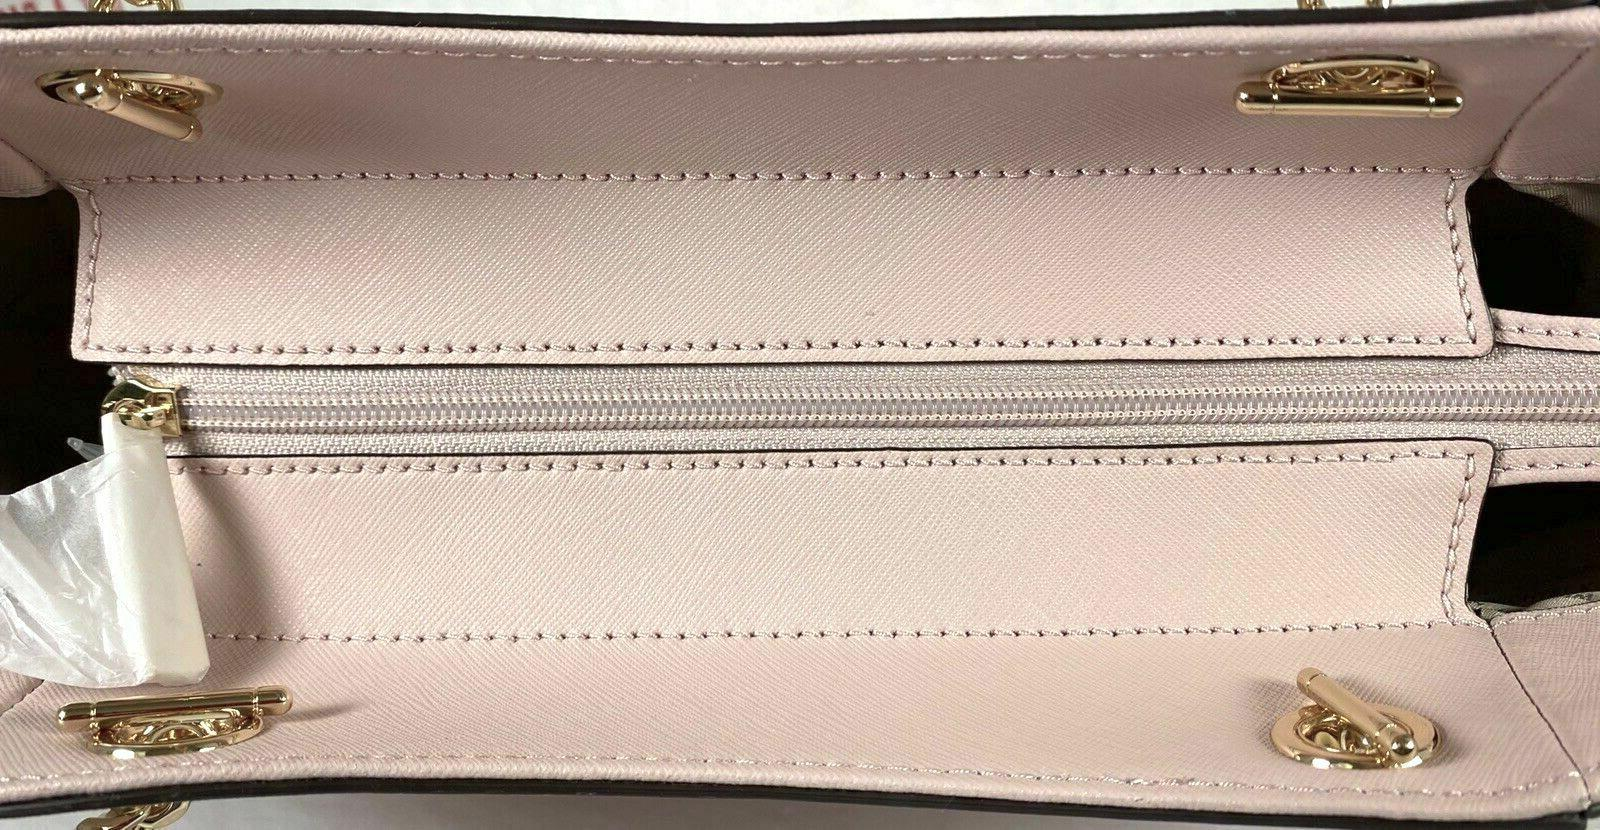 Michael Chain Pink Saffiano Leather Large Shoulder Tote Bag